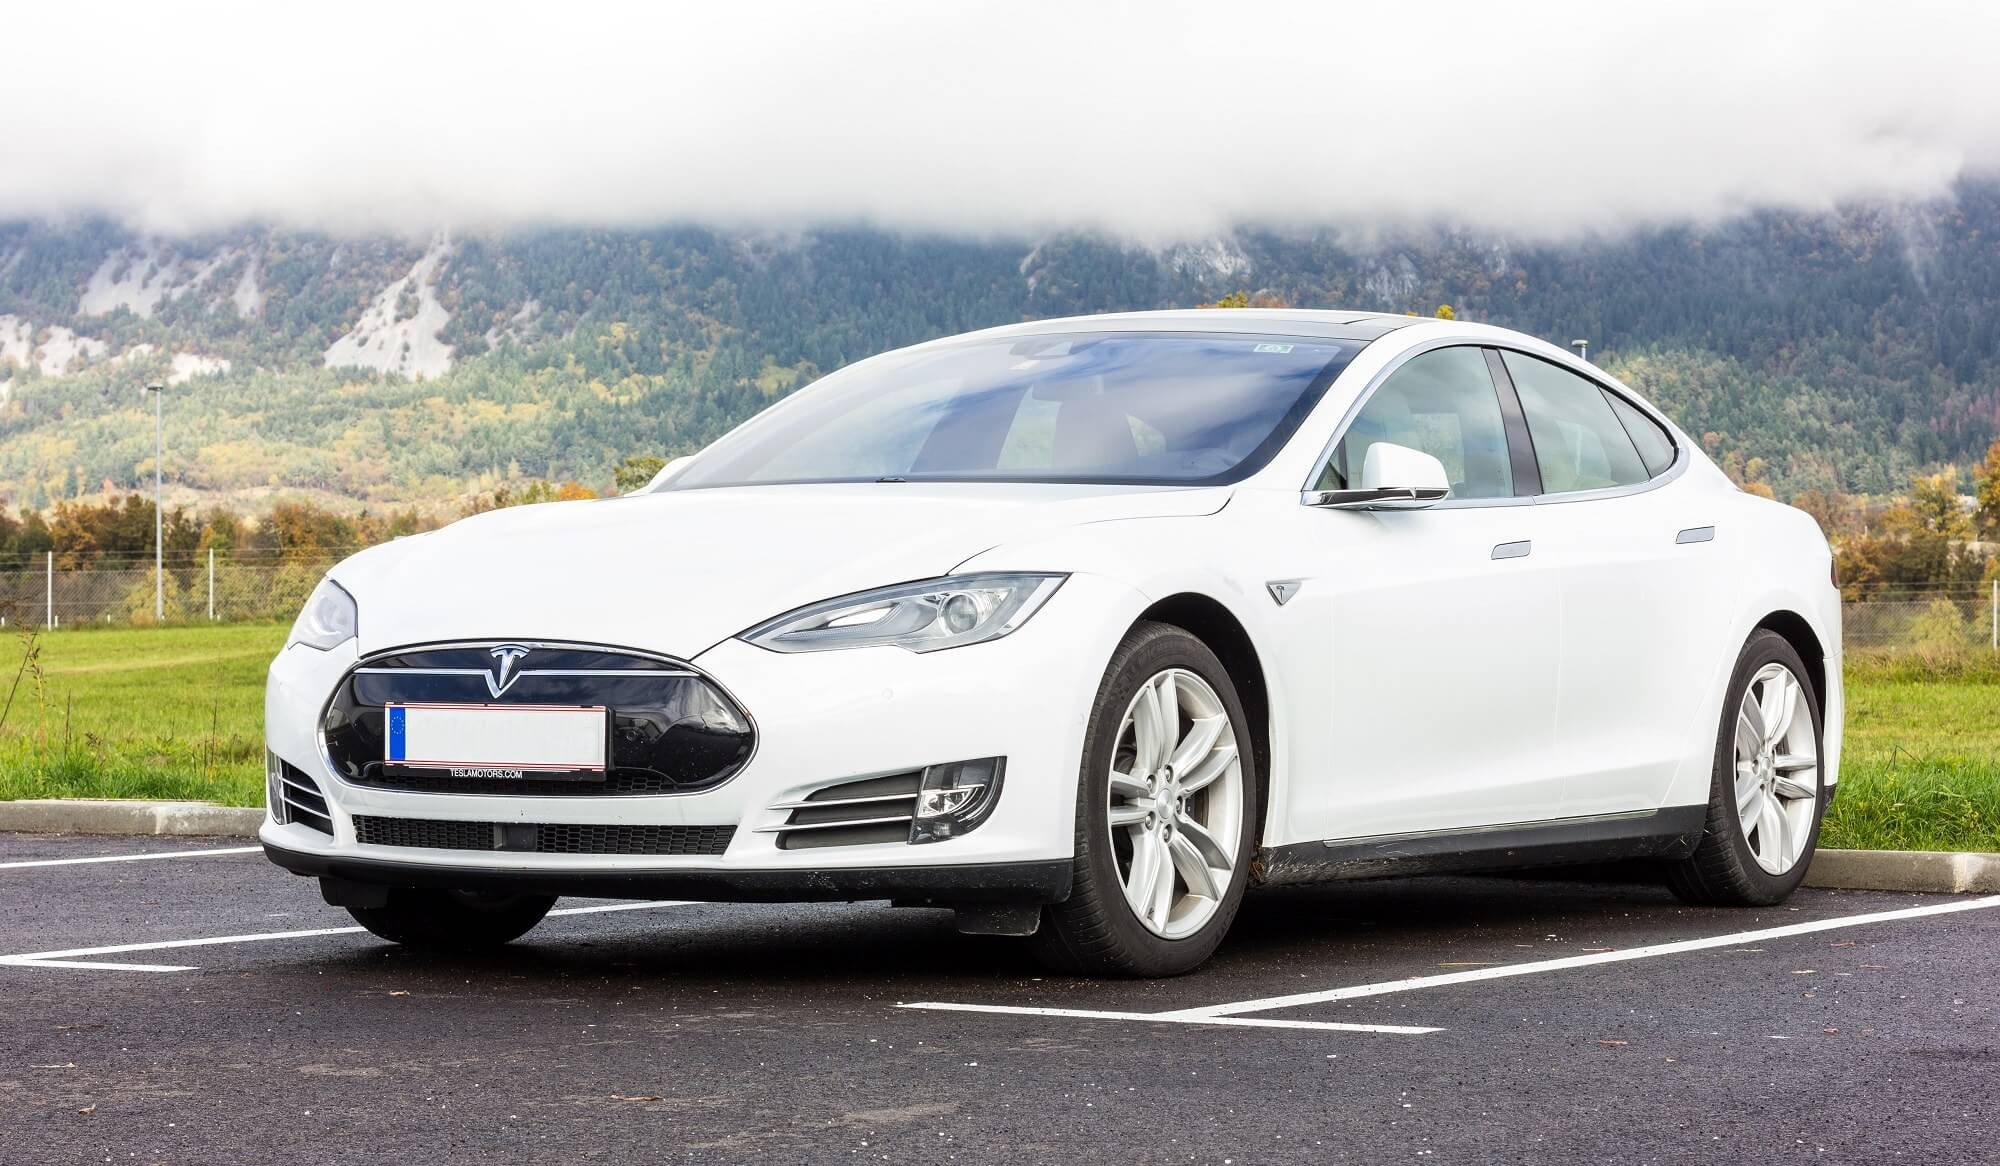 Researchers show how to trick a Tesla into speeding using a piece of tape